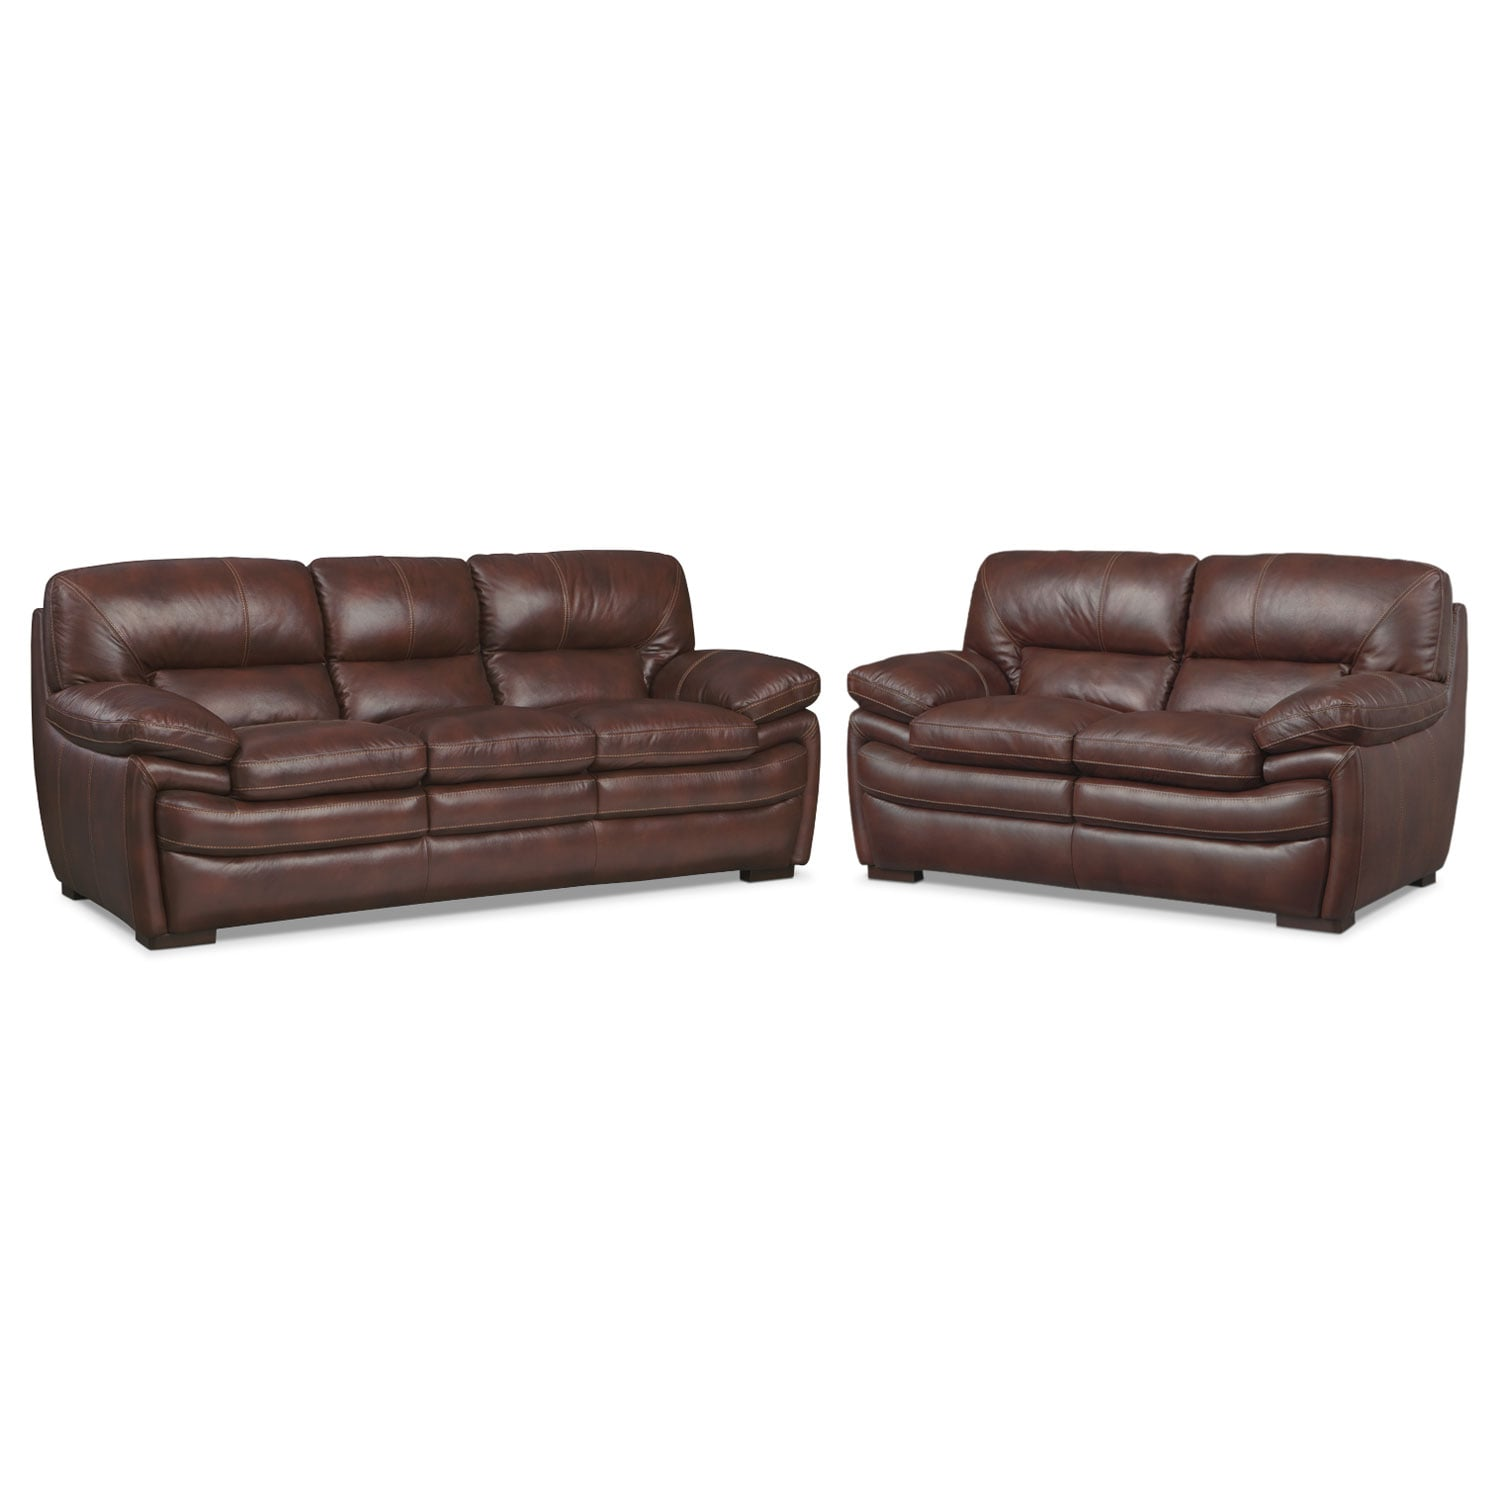 Living Room Furniture - Peyton Chestnut 2 Pc. Living Room